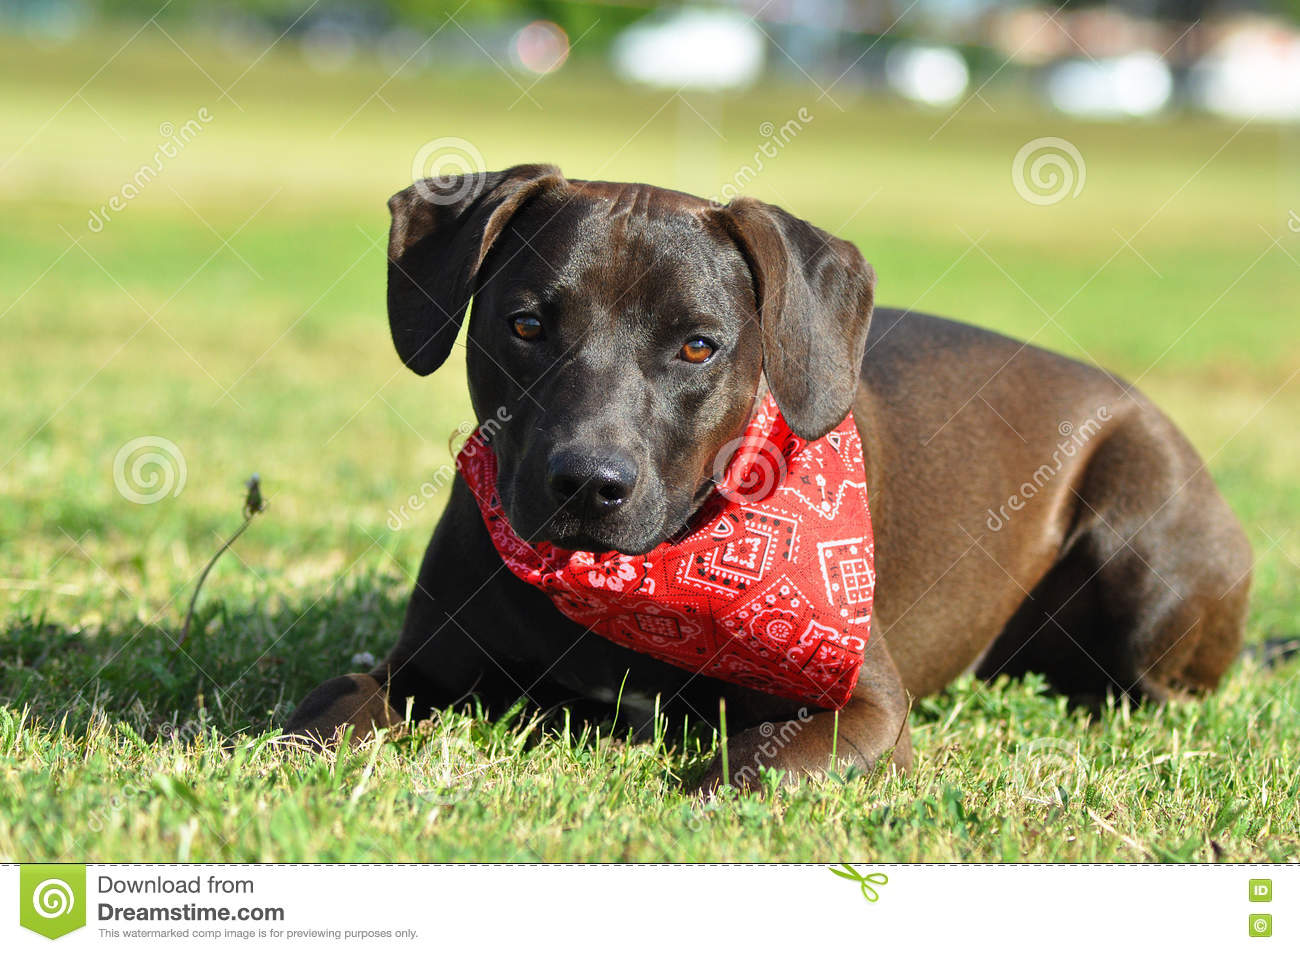 A Crossbreed American Staffordshire Terrier Laying Down